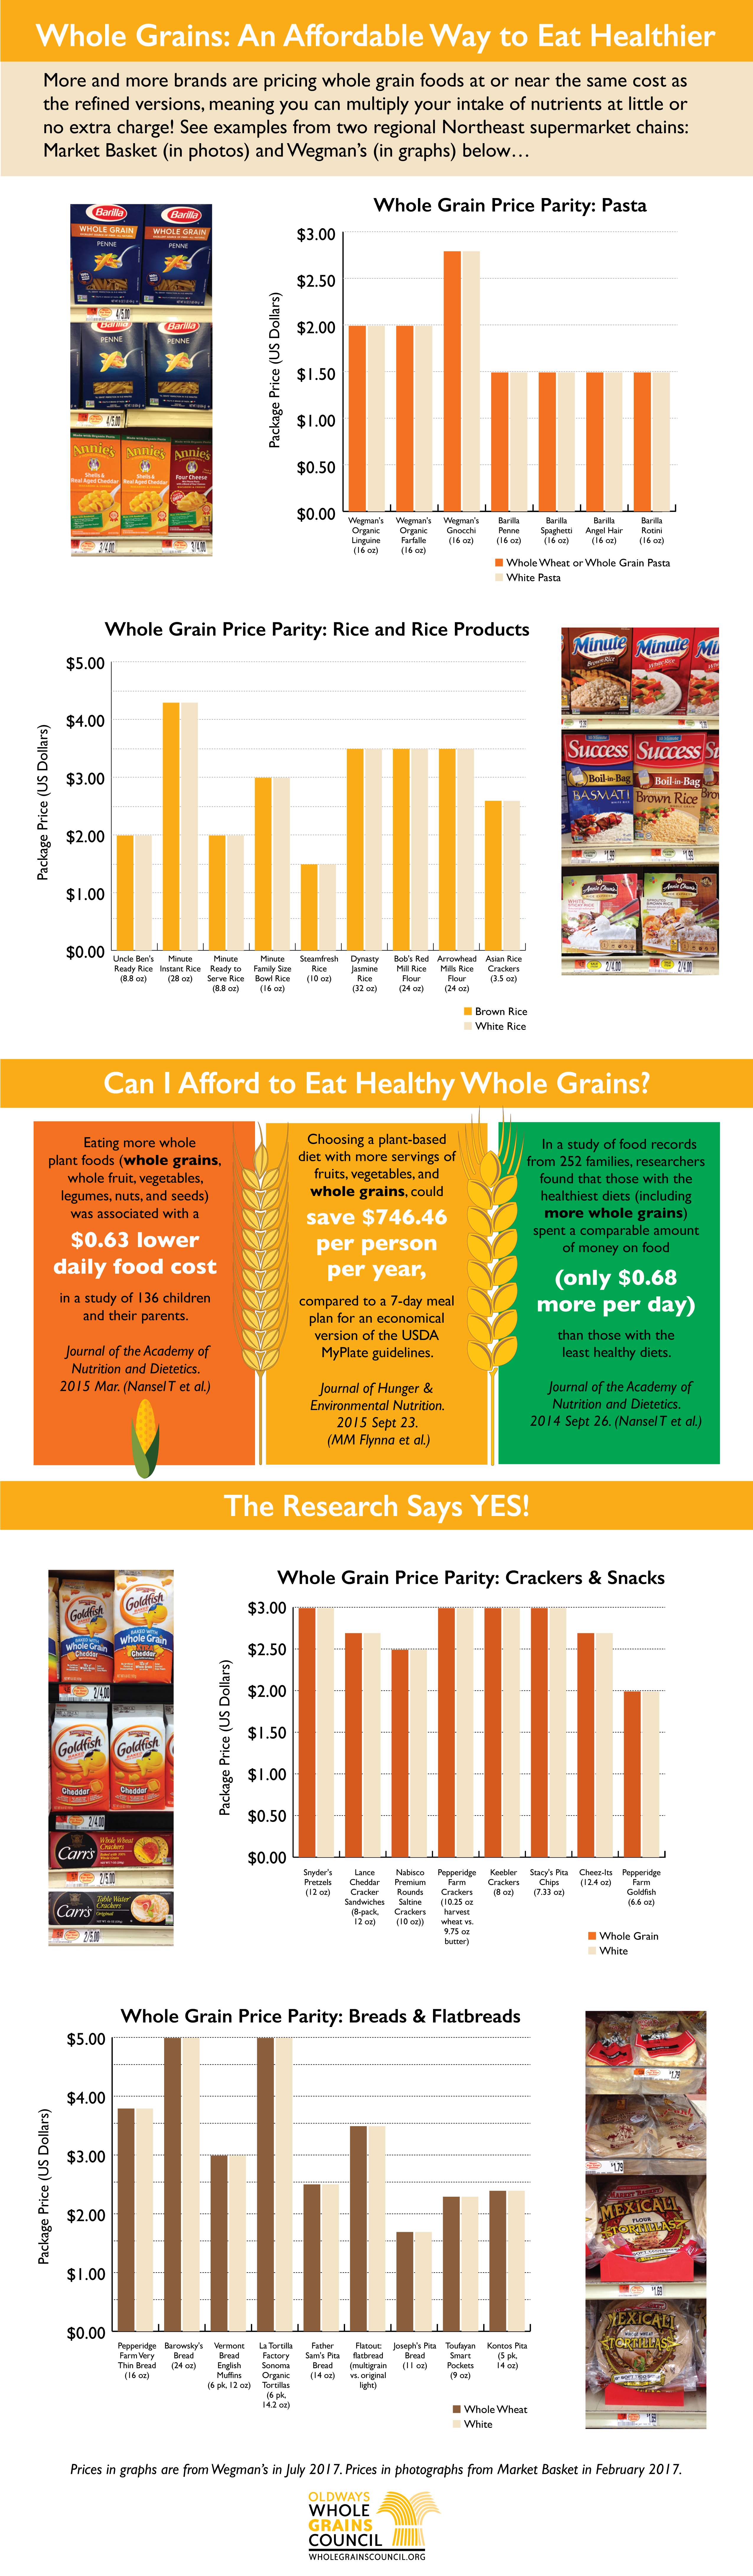 infographic with facts about why whole grains are affordable